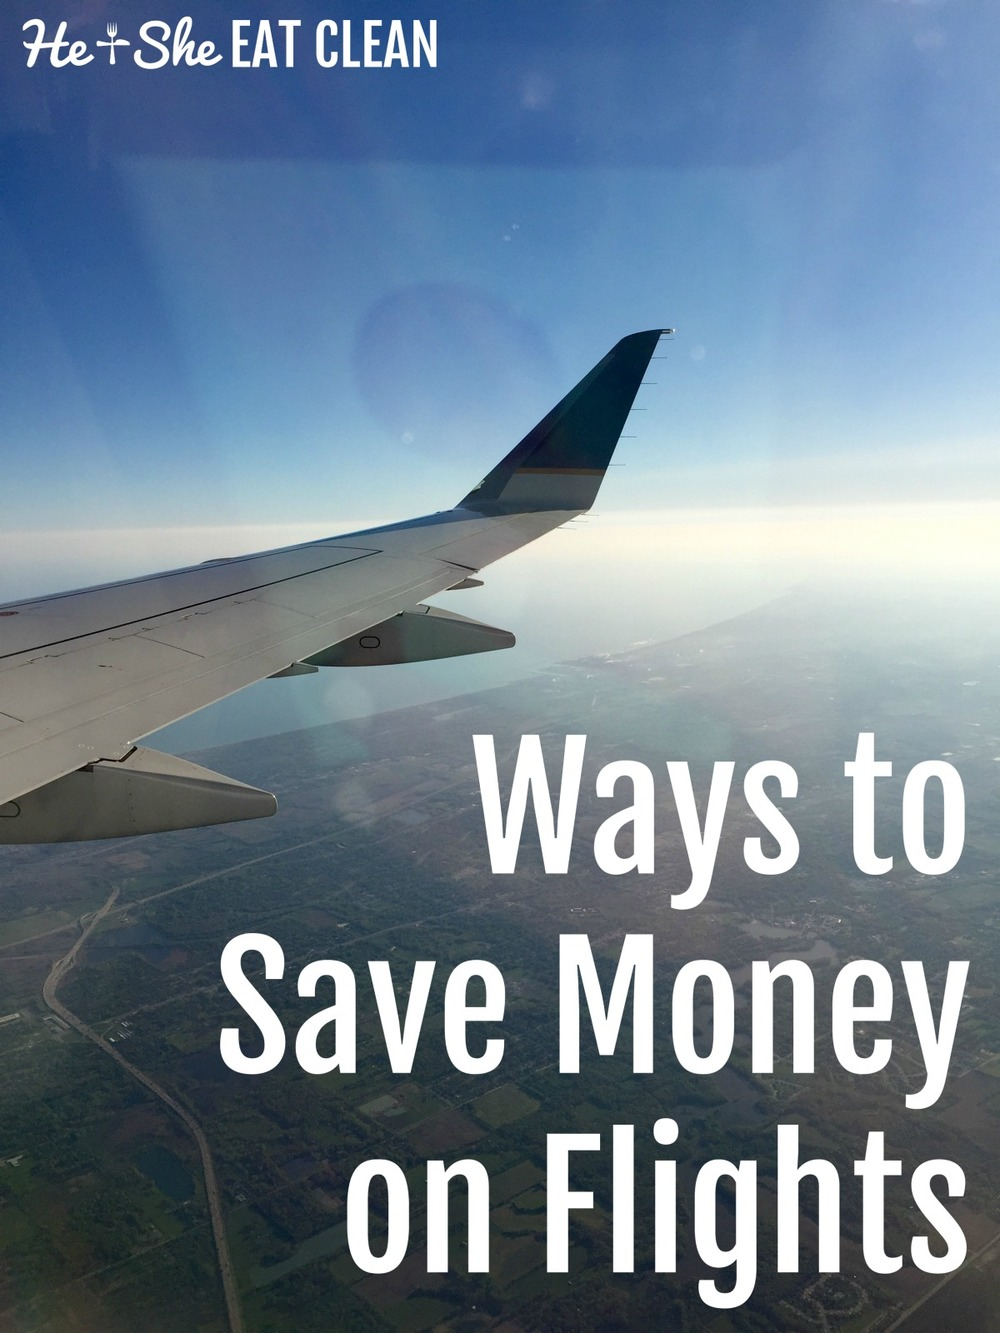 Ways to Save Money When Traveling - Flights | He and She Eat Clean